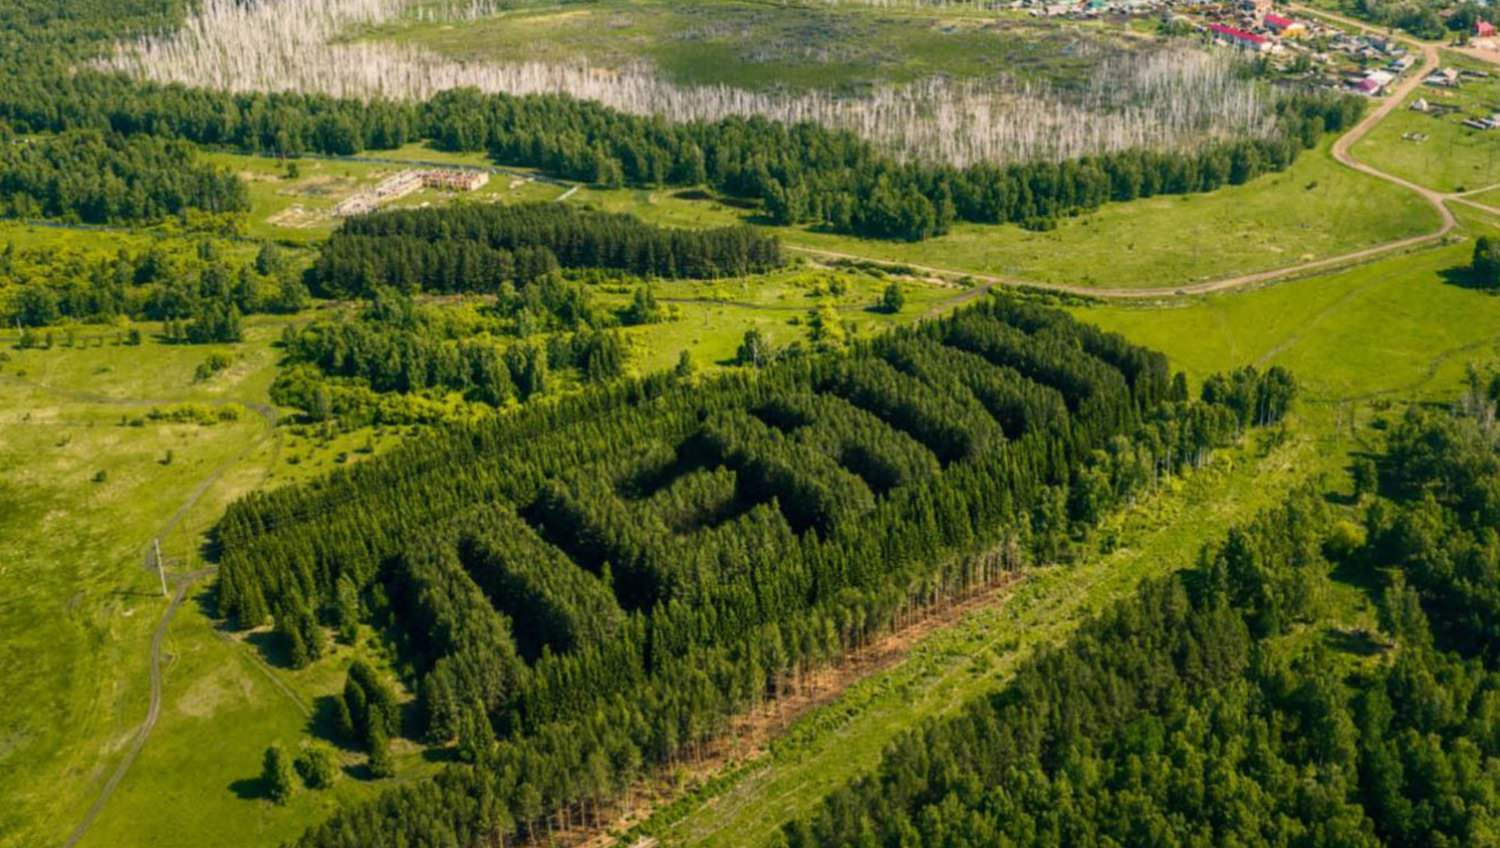 Lenin-shaped Siberian forest captured in drone photo